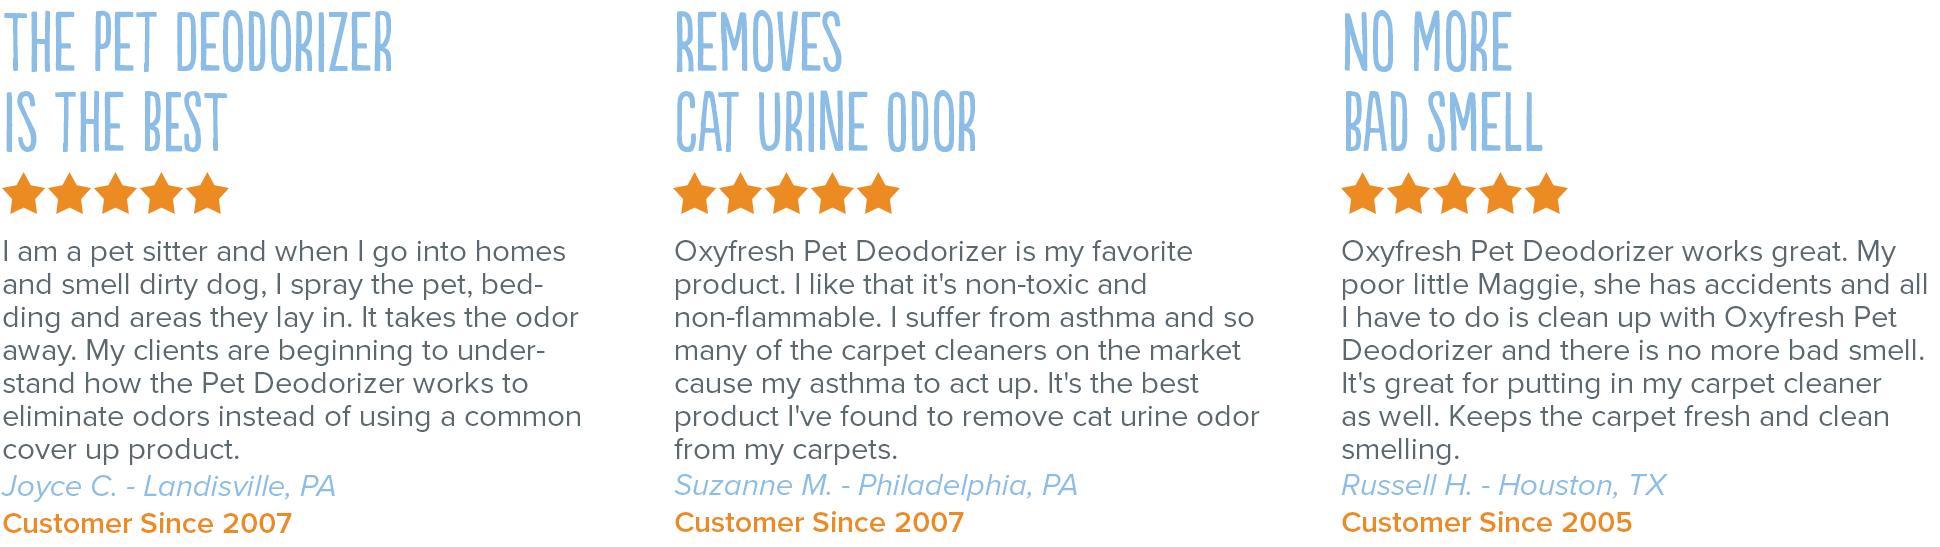 Oxyfresh - Pet Deodorizer Reviews